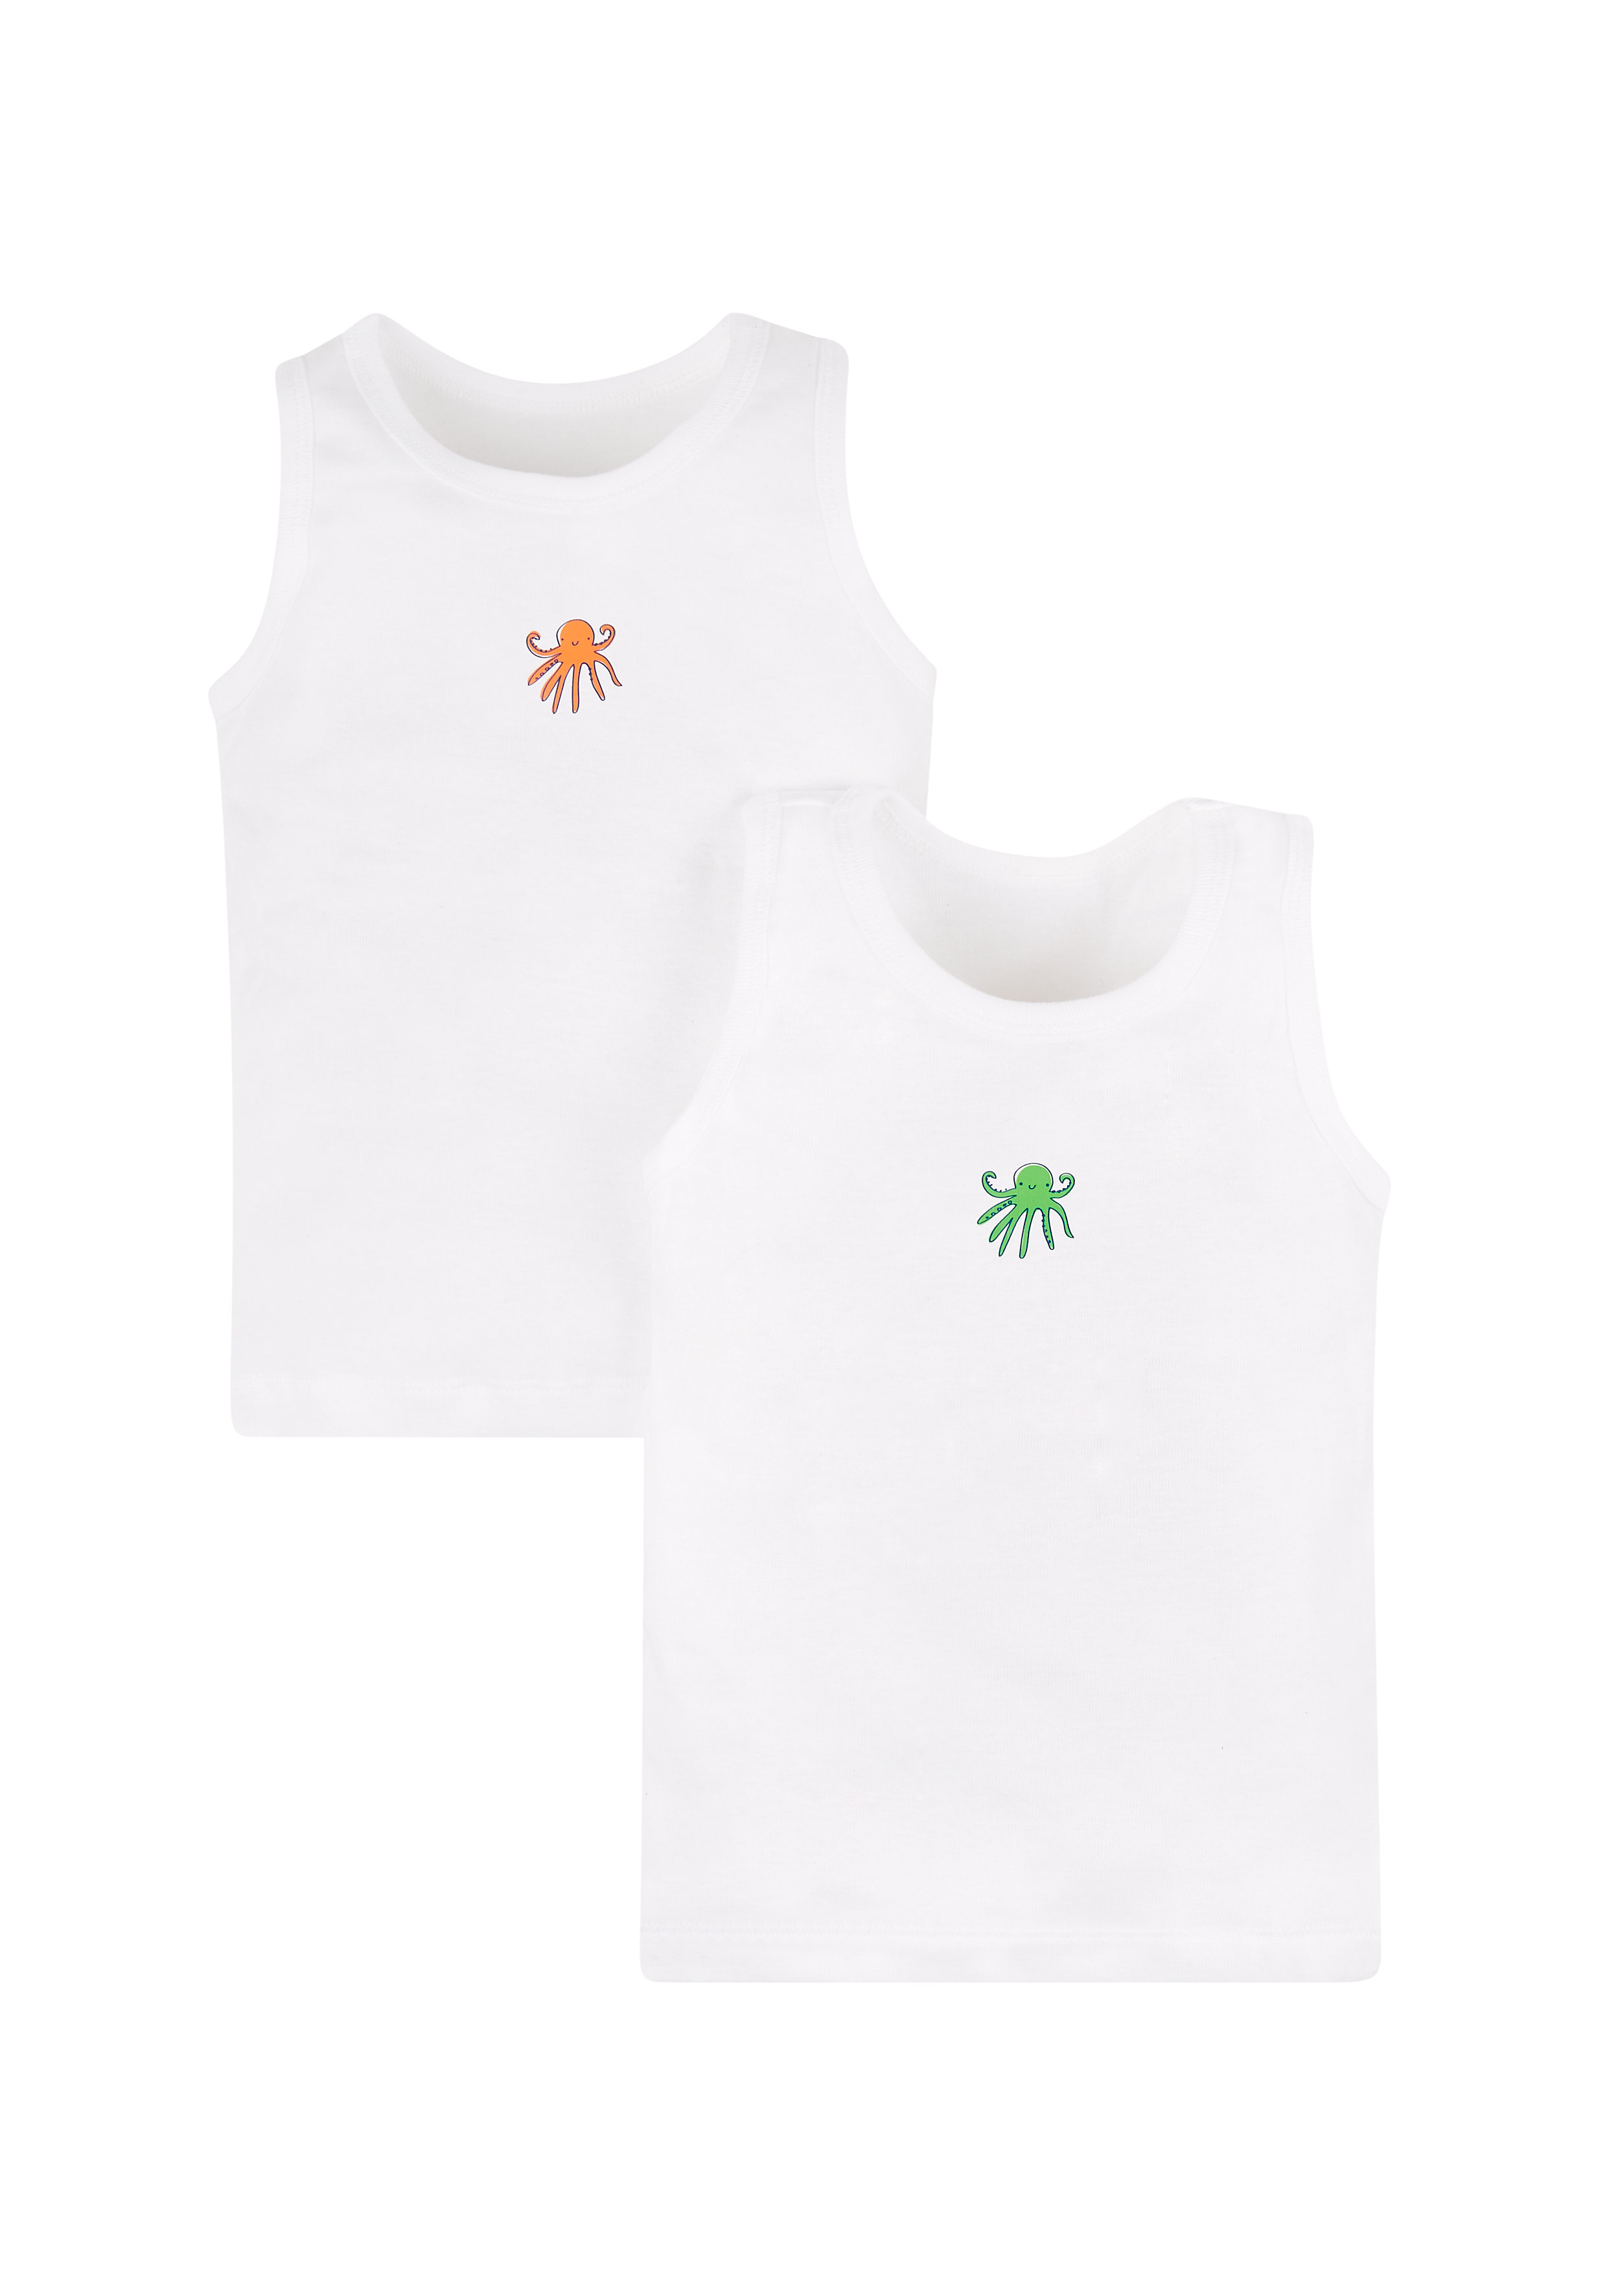 Mothercare   Boys Octopus Vests - 2 Pack - White